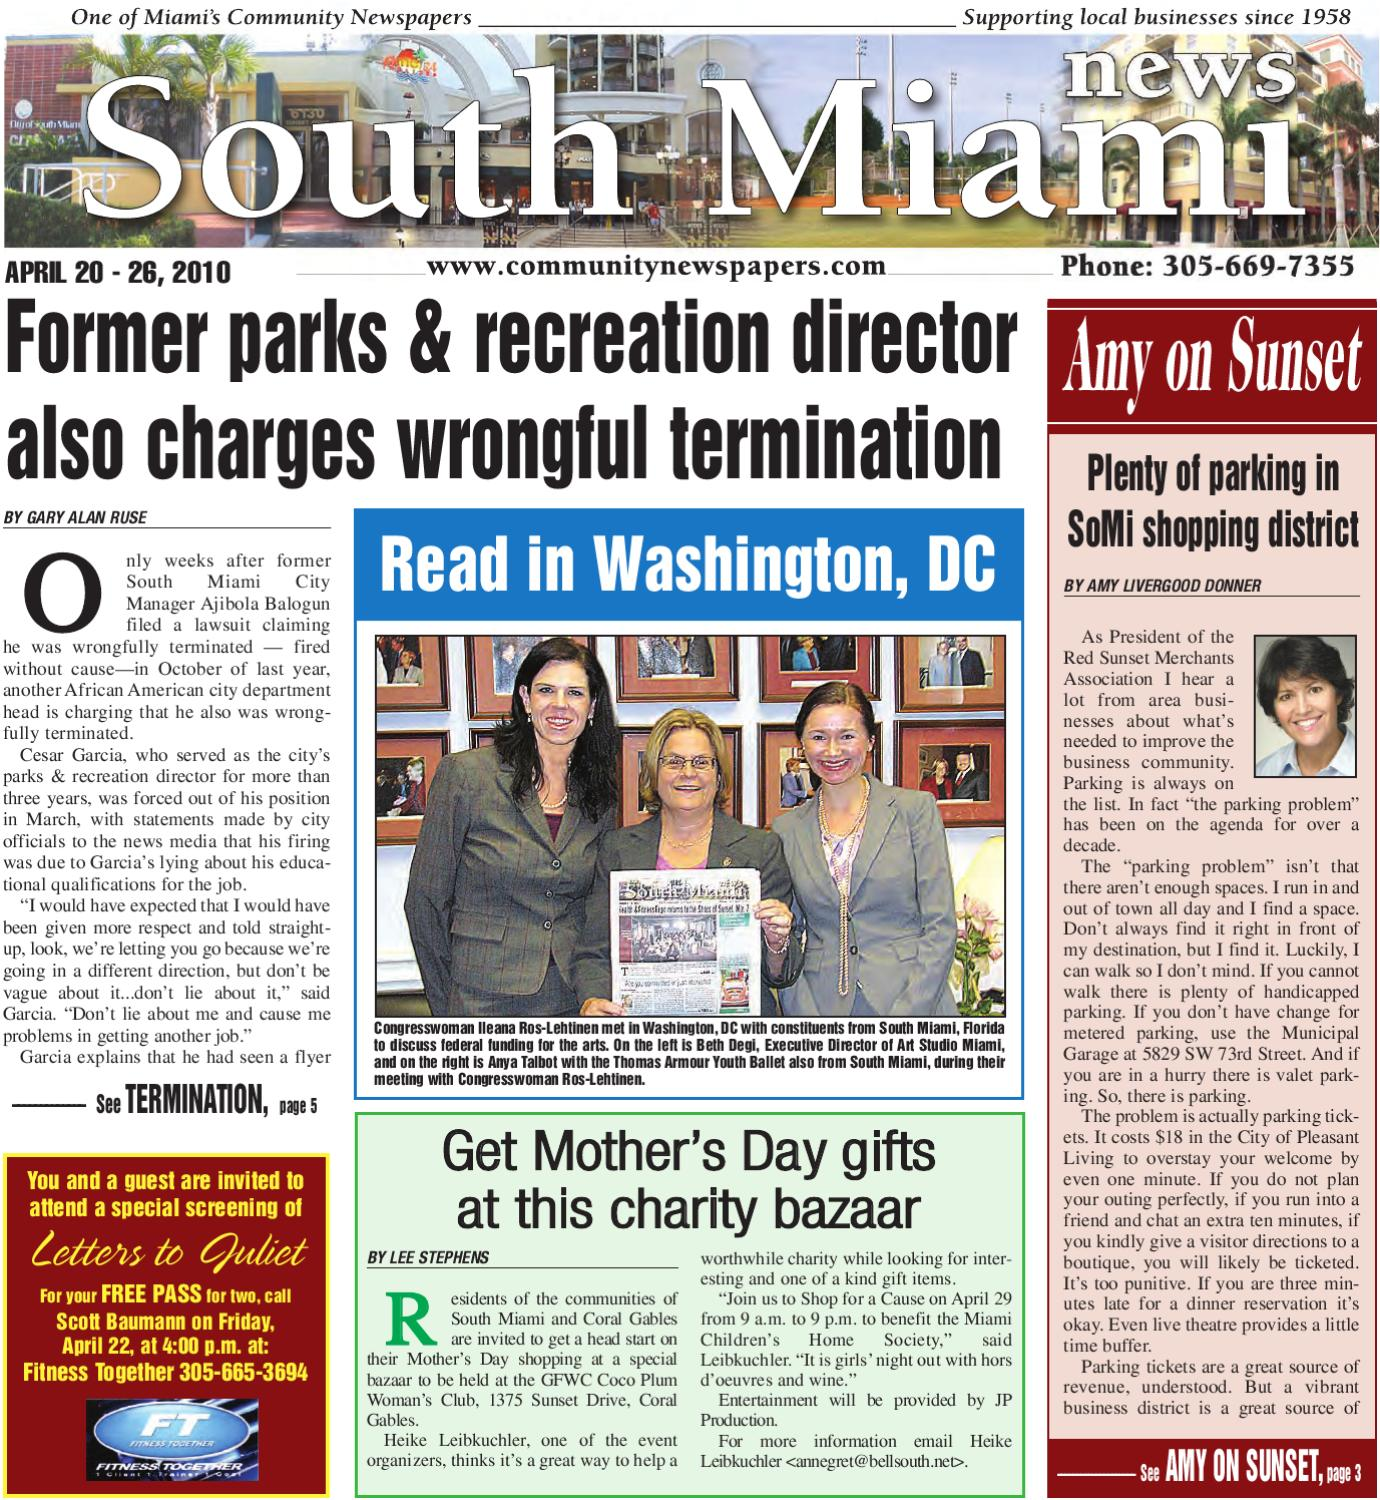 South Miami News - April 20, 2010 - Online printed Edition